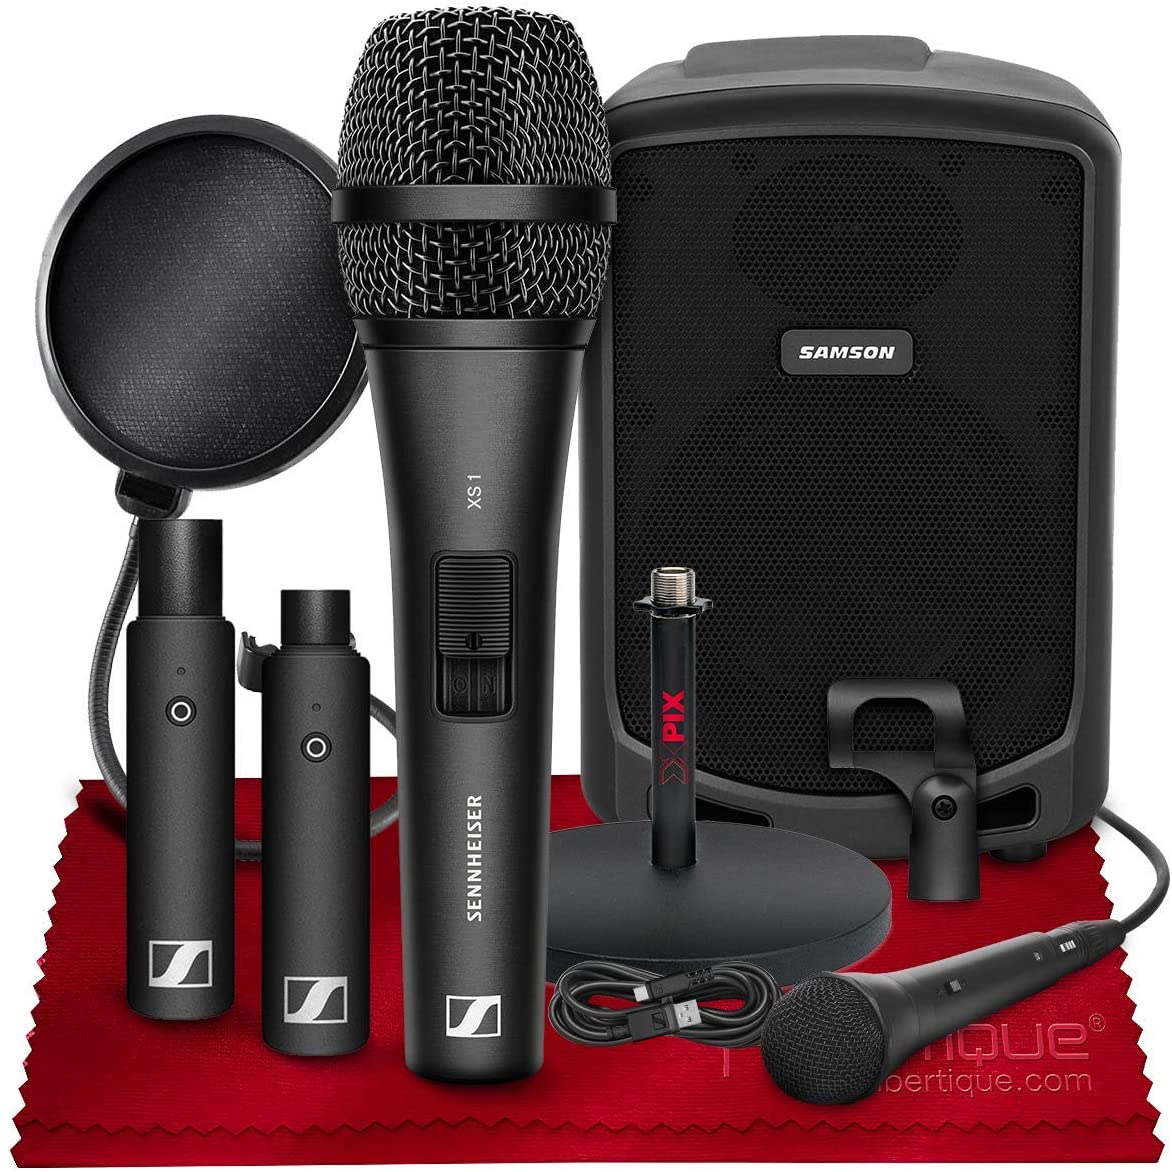 Sennheiser XSW-D VOCAL SET Digital Wireless Plug-On Microphone System with Handheld Mic w/Samson Expedition Express Portable PA Speaker, and Accessories - Ideal for Teaching or Preaching